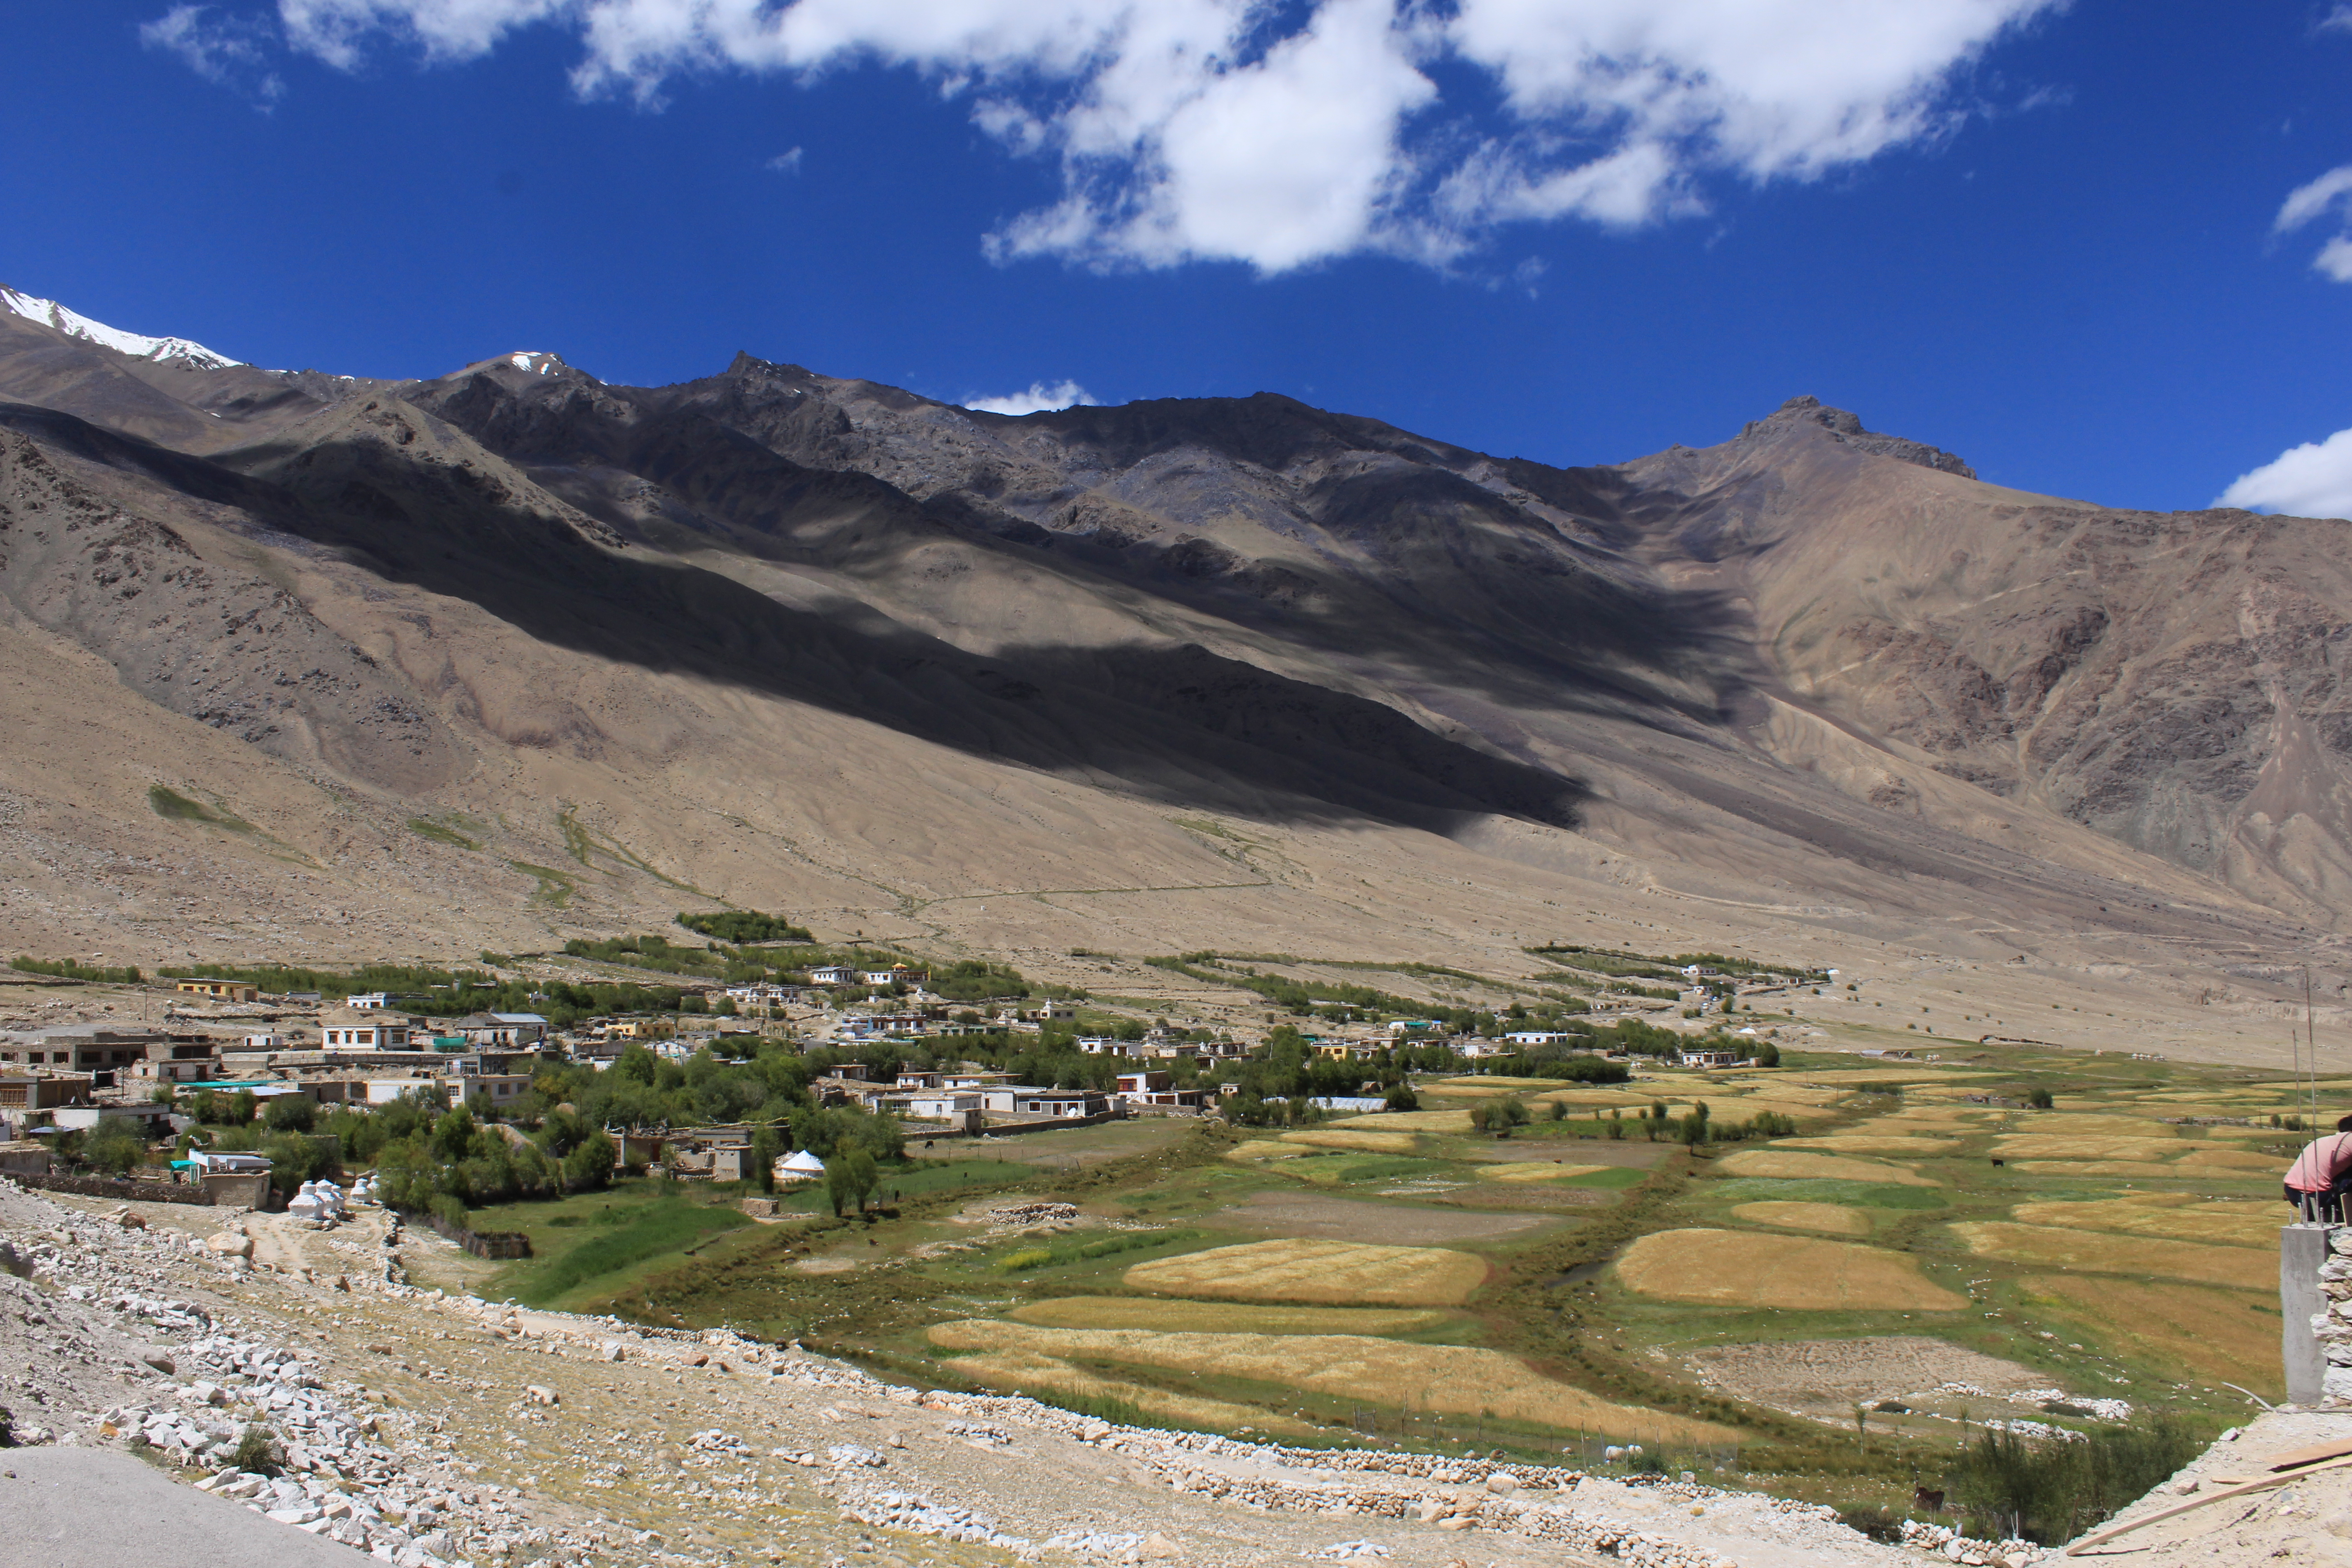 Khardung Village - Distant View